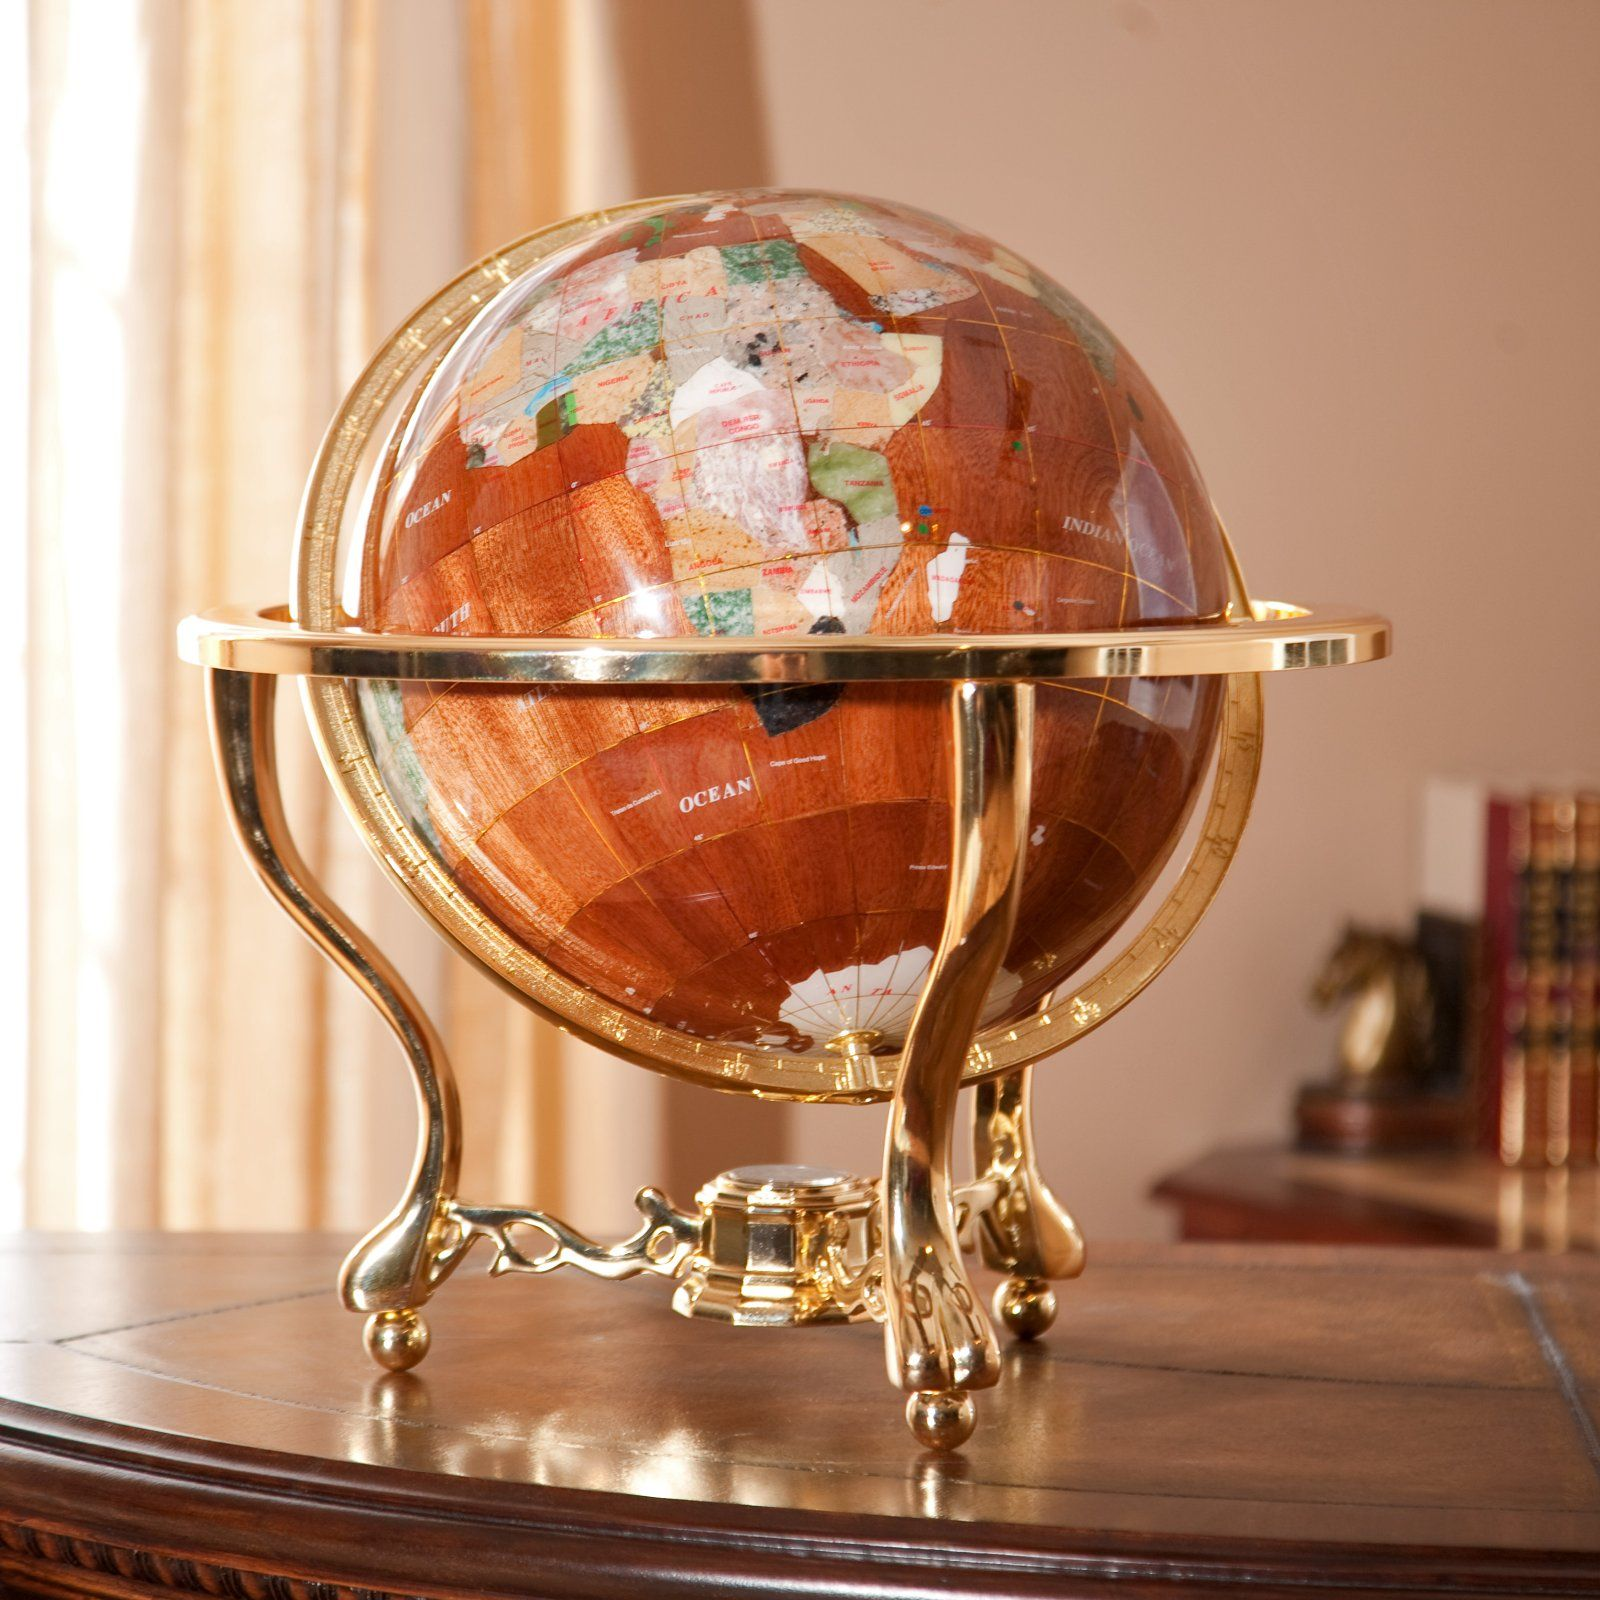 Wood gemstone 13 inch table top globe gemstone globes at world wood gemstone 13 inch table top globe gemstone globes at world globes gumiabroncs